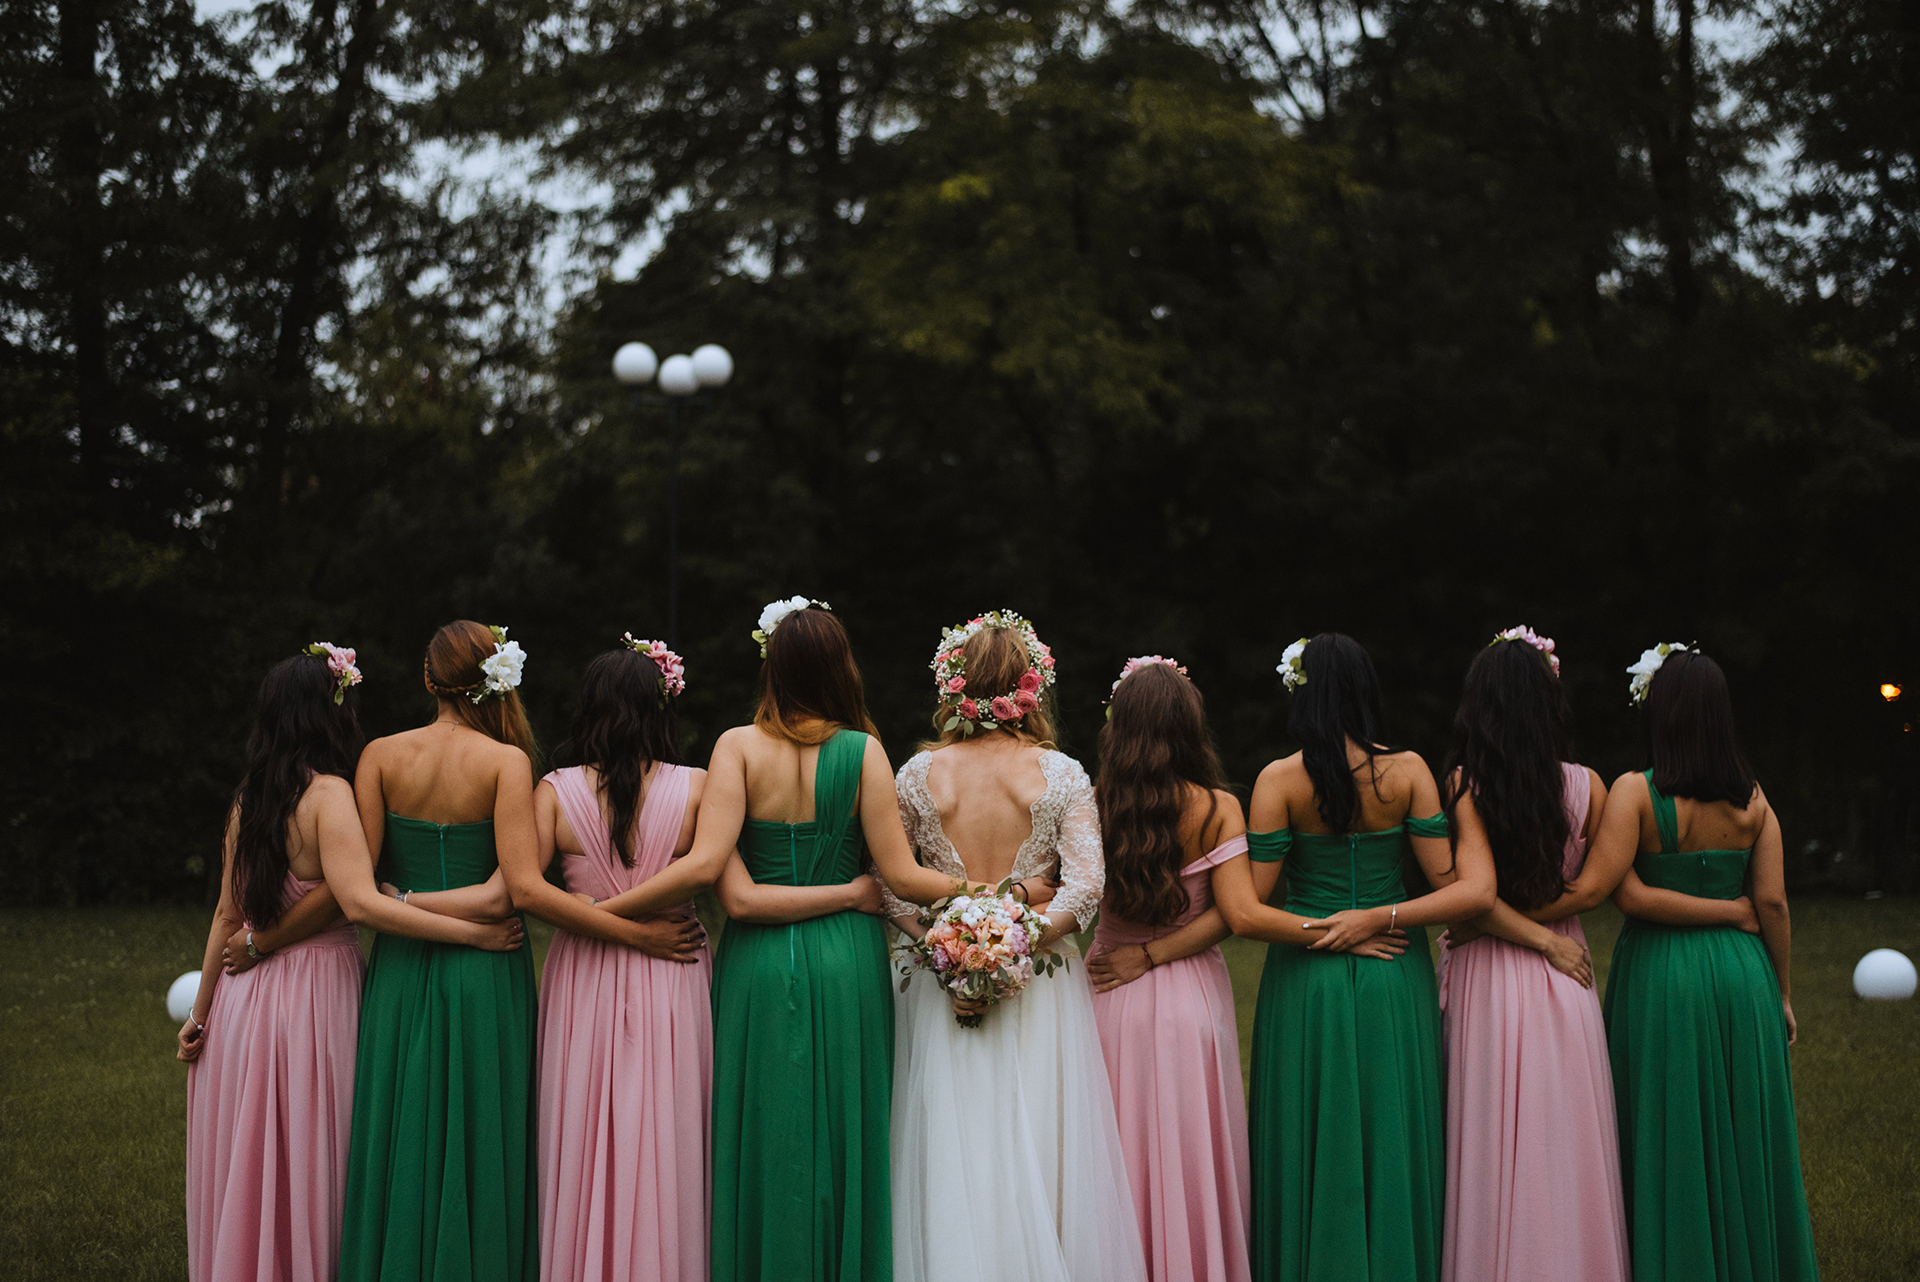 wedding-pink-and-green-bridesmaids-dresses-tulle-and-lace-wedding-dress (12)